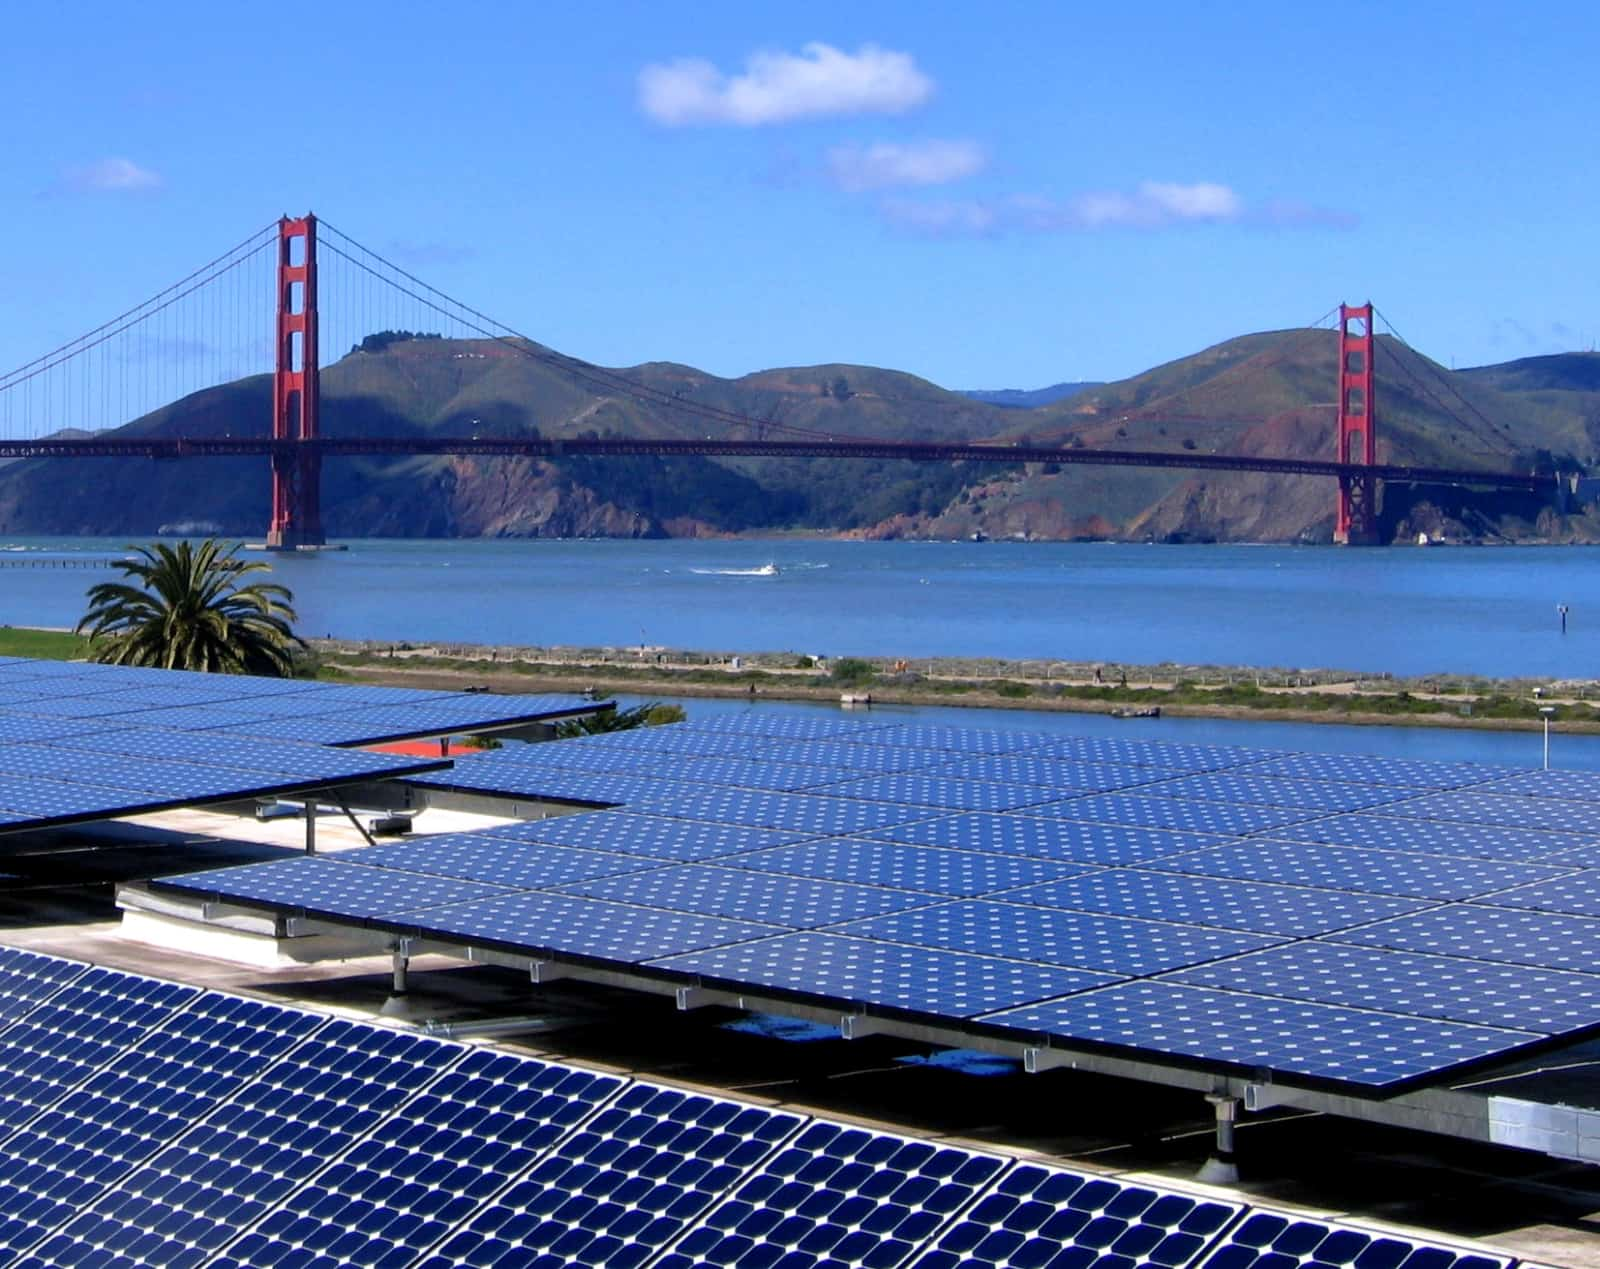 Solar energy can be game changer for states seia for Solar energy games